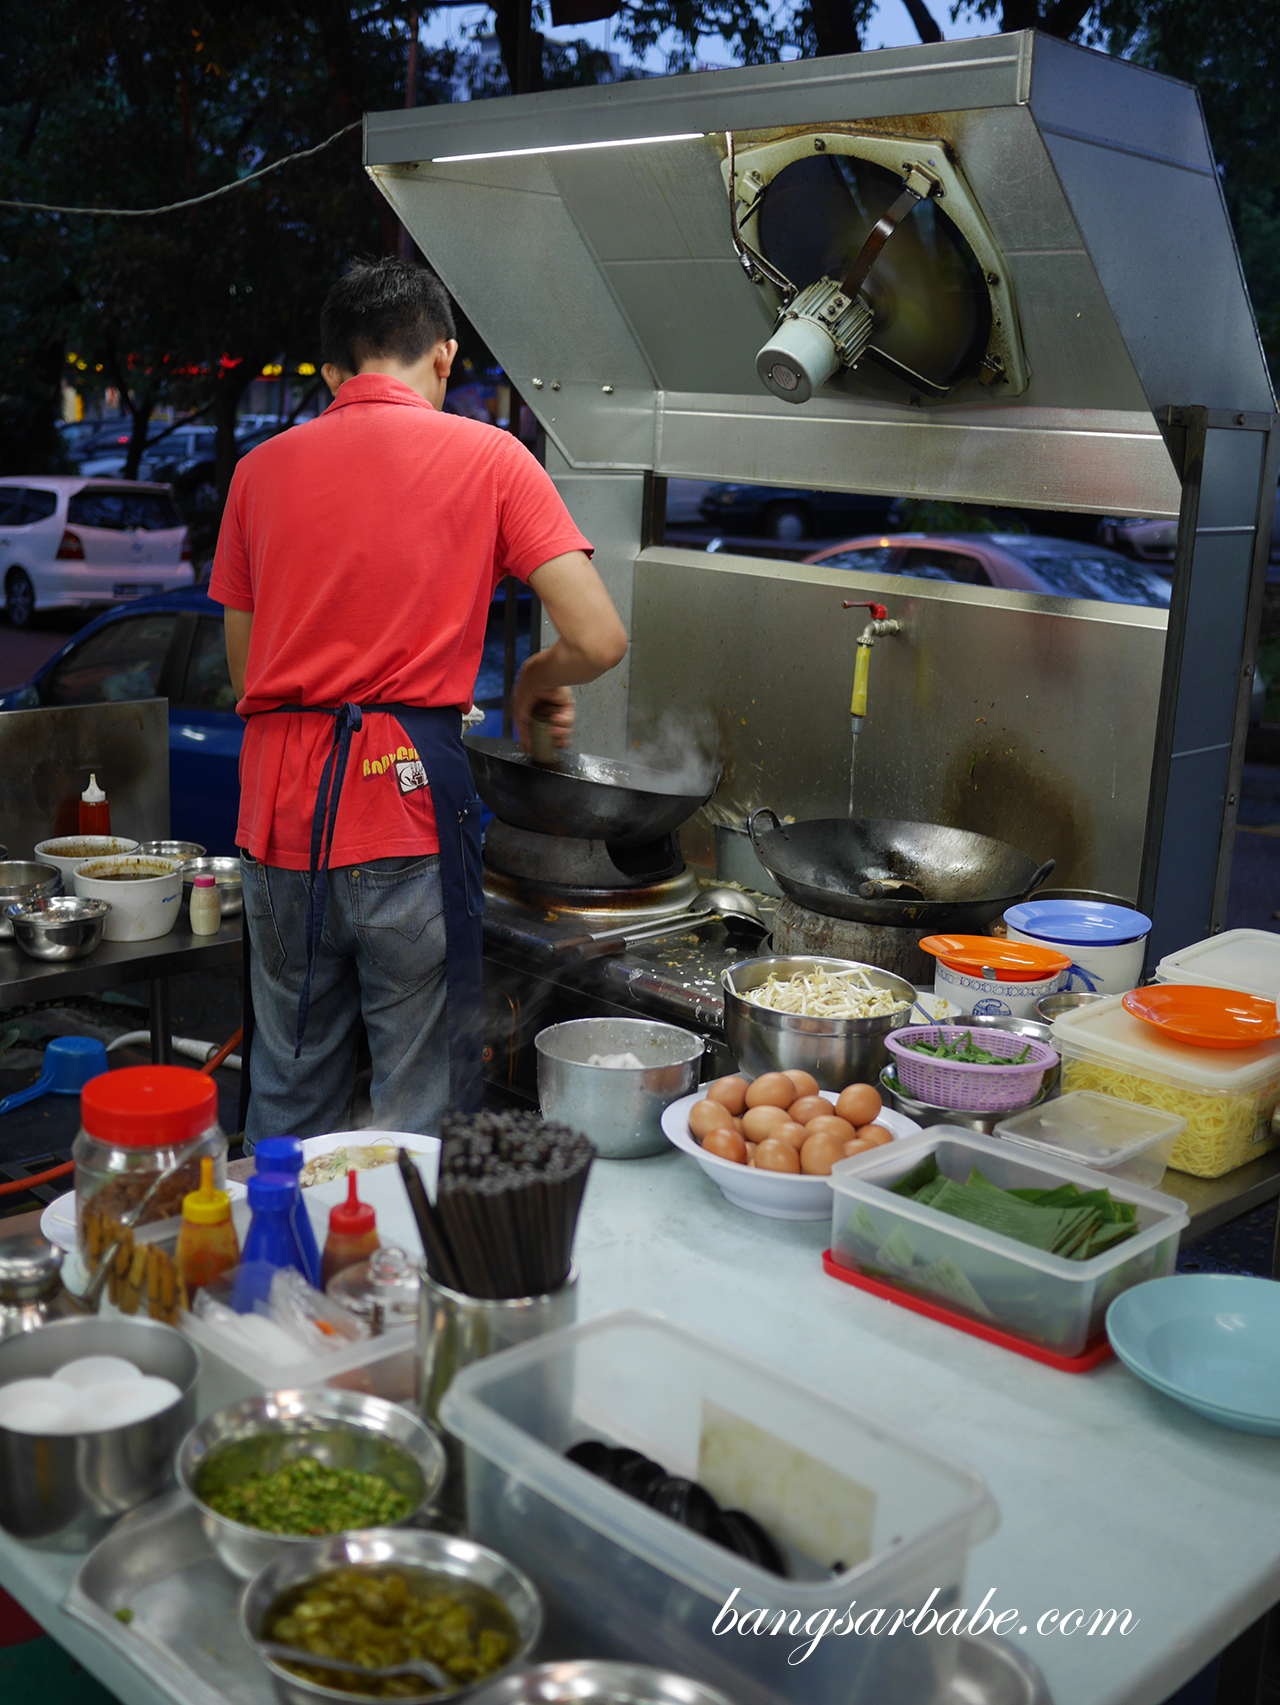 Danny Penang Tua Pan - Cooking Station